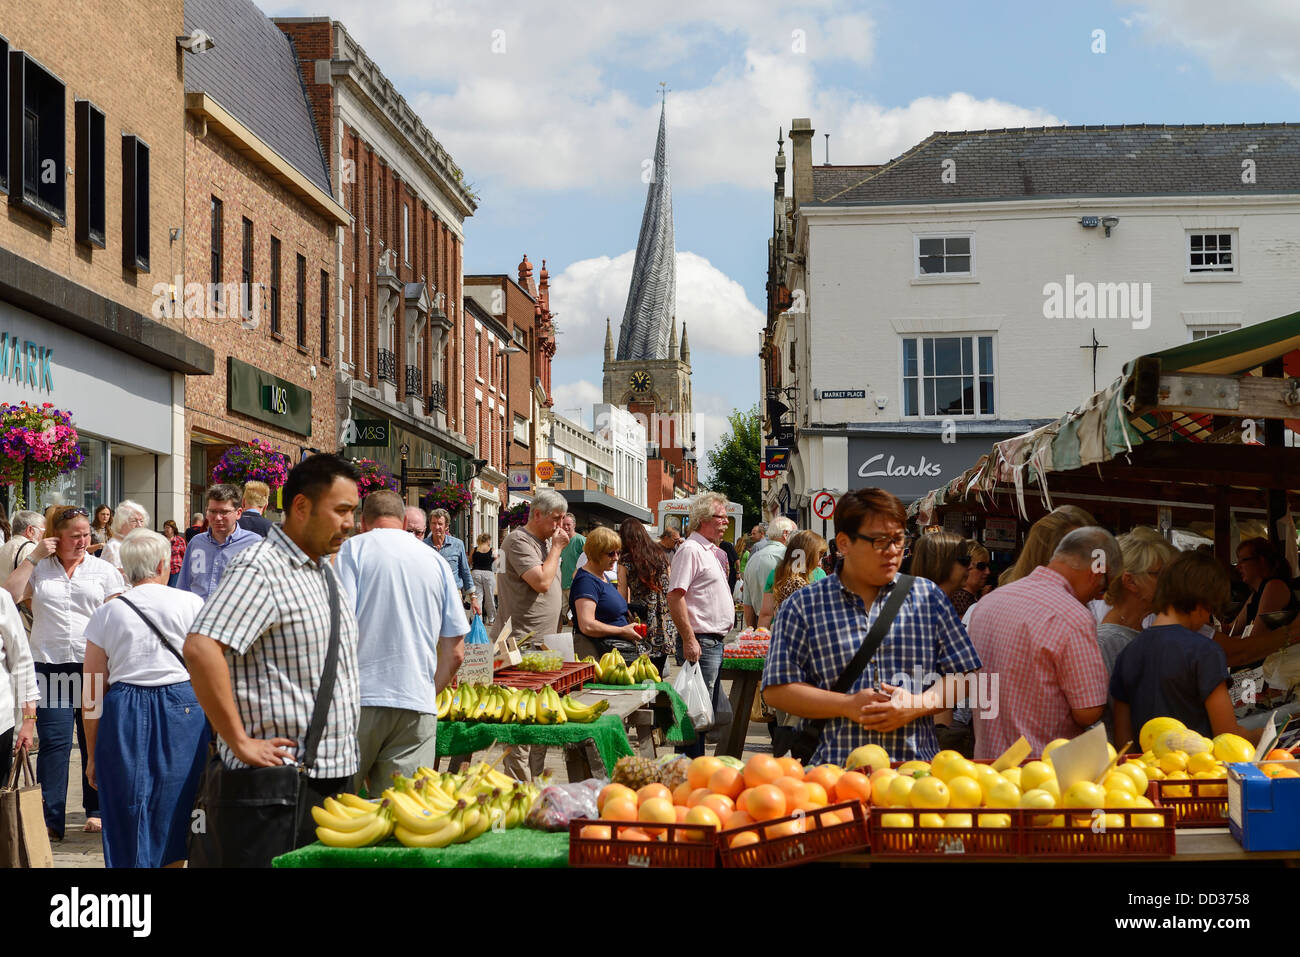 Shoppers visiting the outdoor market in Chesterfield town centre - Stock Image